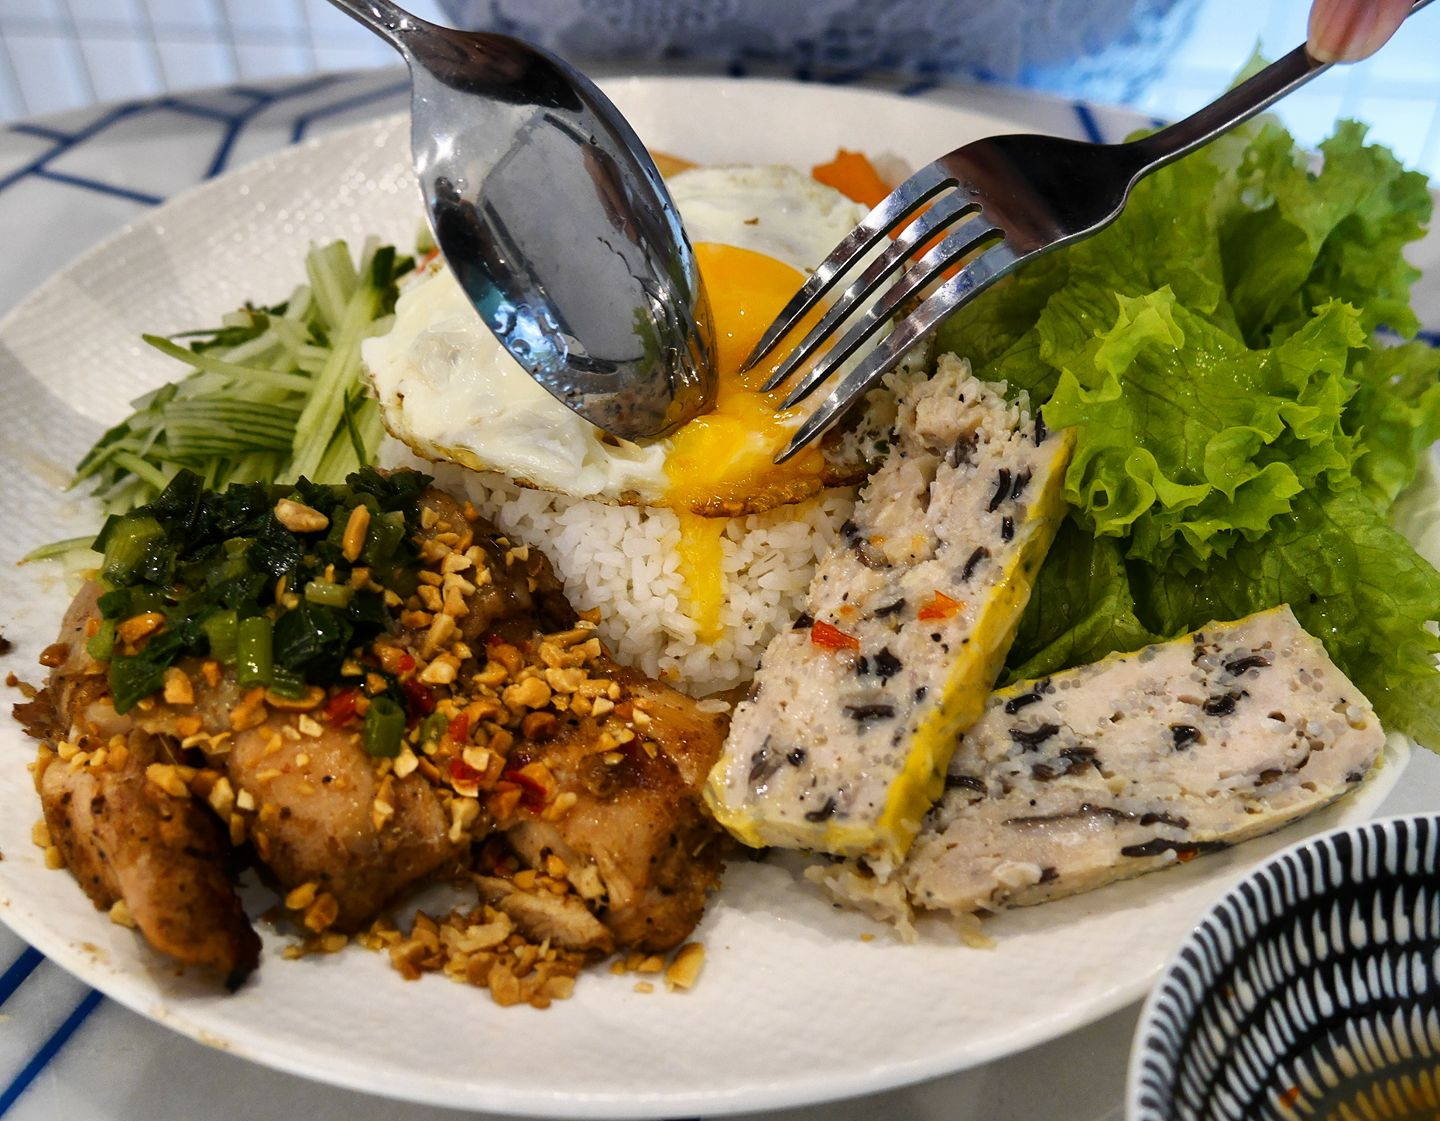 Com tam is available too! The Broken Rice dish is served with a choice of lemongrass chicken or grilled lamb.